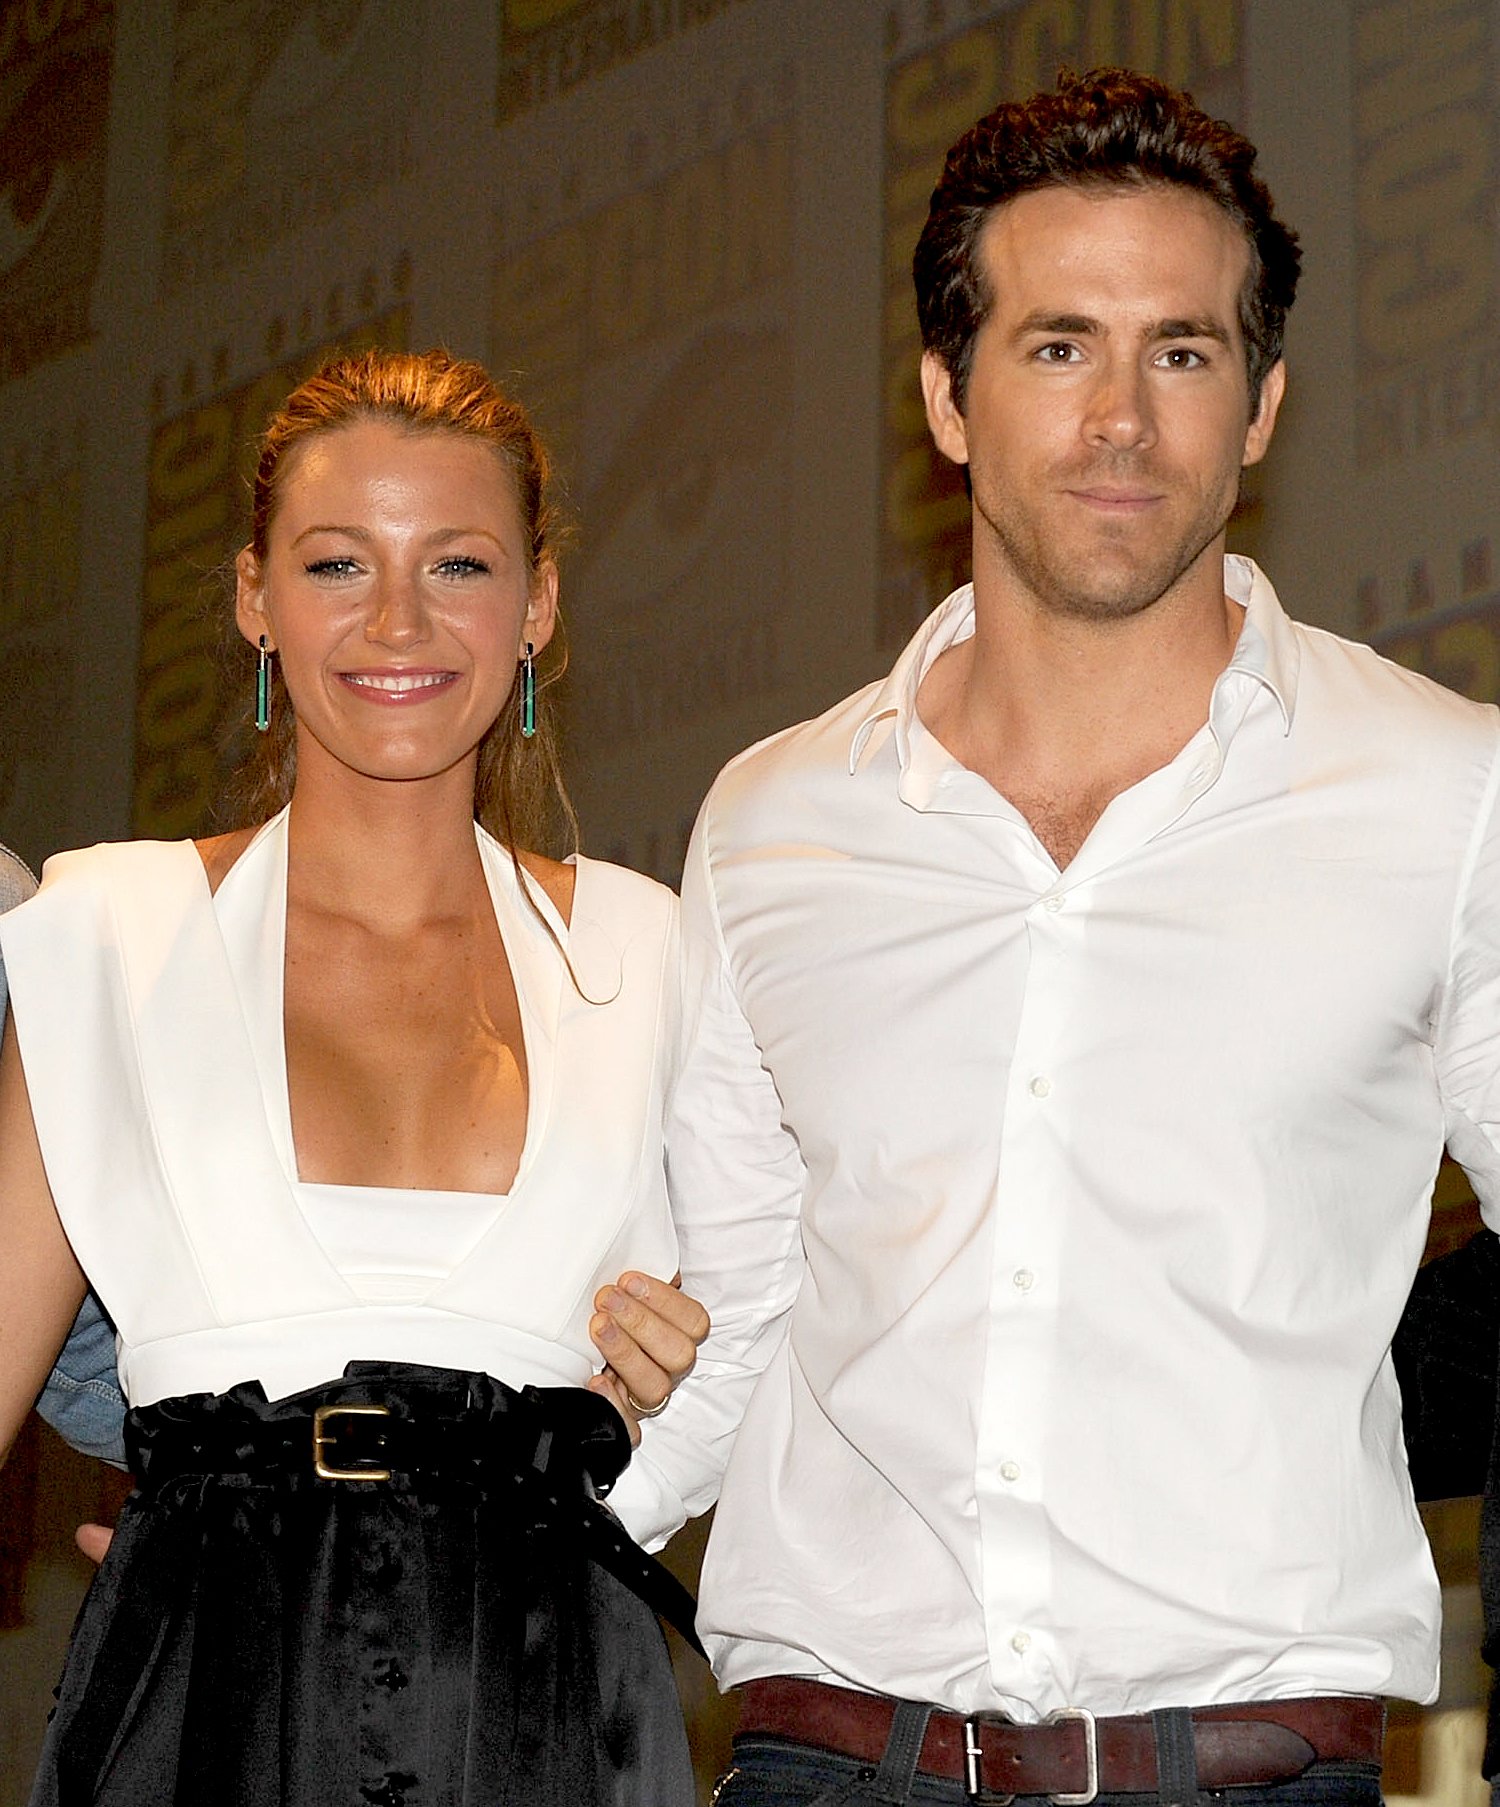 Blake-Lively-Ryan-Reynolds-July-24,-2010 - Blake Lively and Ryan Reynolds made their debut as Green Lantern costars at 2010 Comic-Con at the San Diego Convention Center. At the time, Reynolds was still married to Scarlett Johansson , and Lively was dating Gossip Girl costar Penn Badgley .